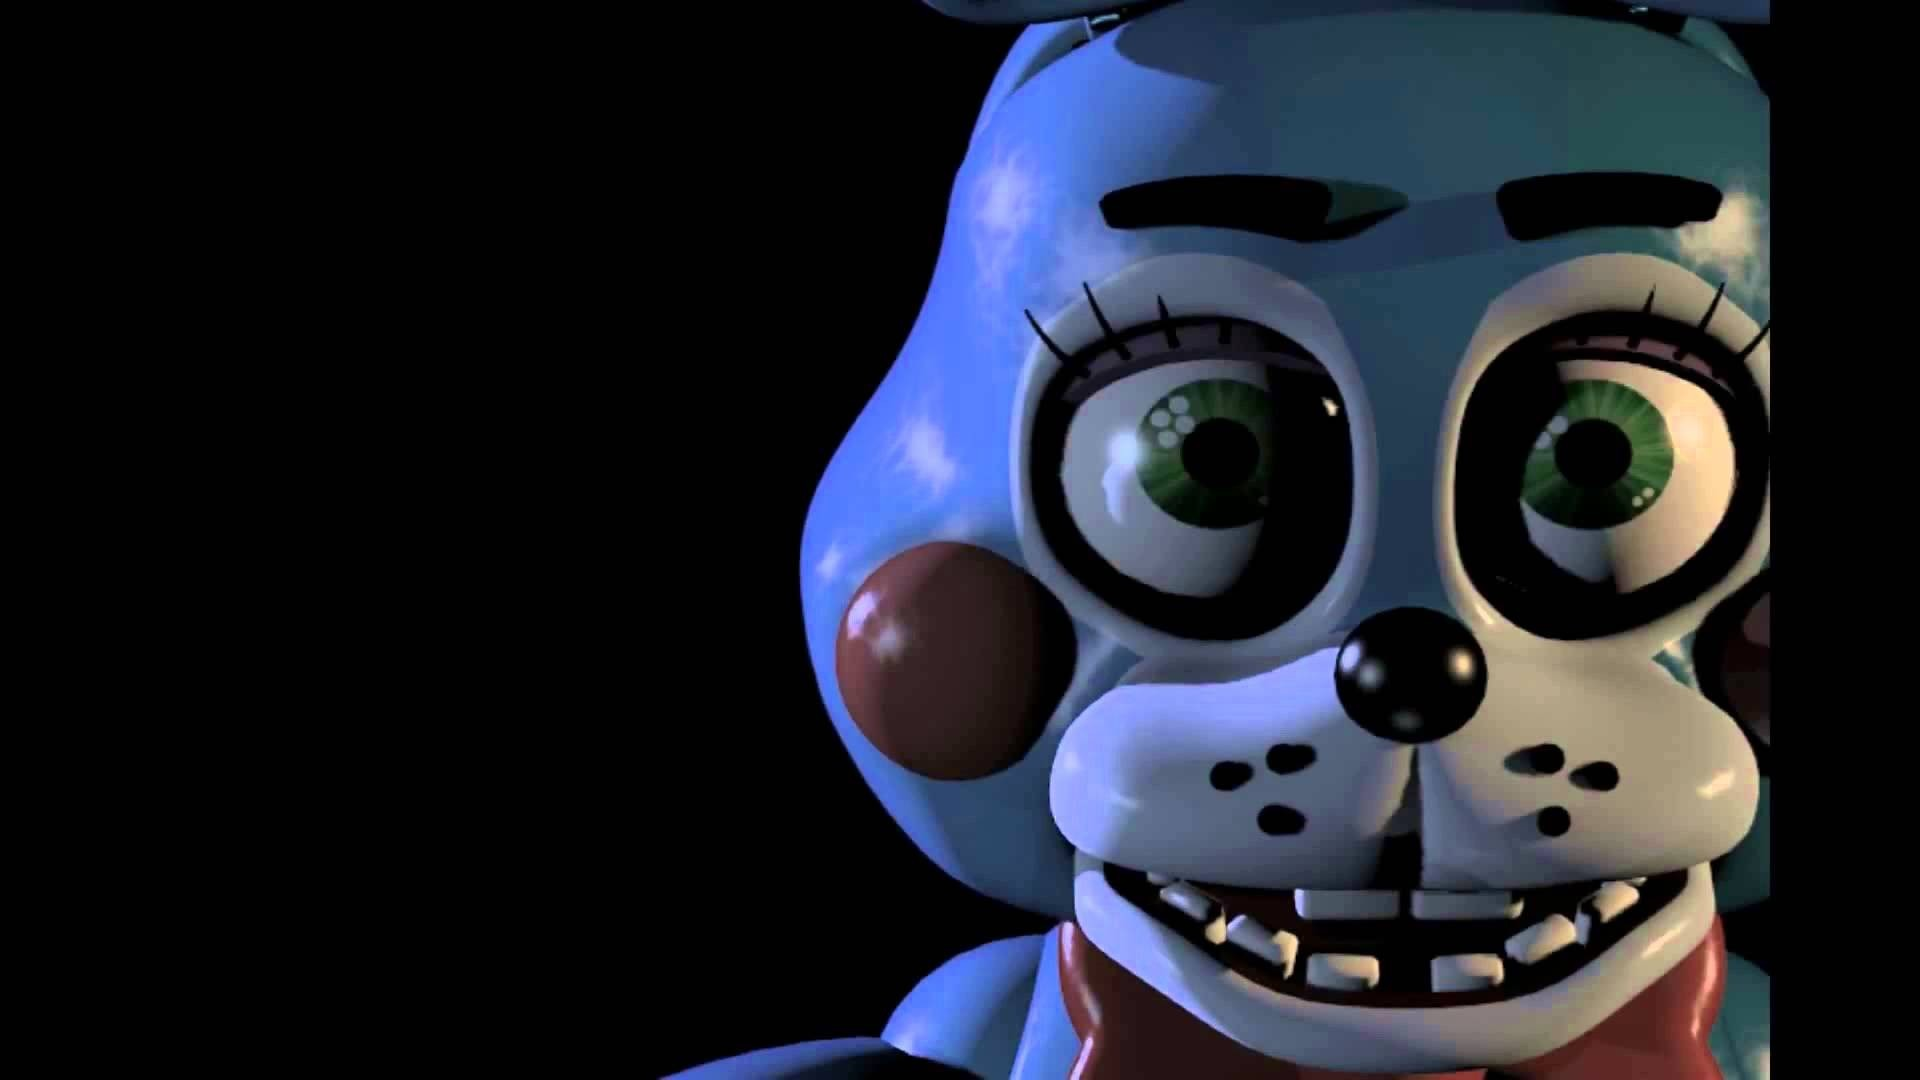 1920x1080 The protagonist of the game Five Nights at Freddy's